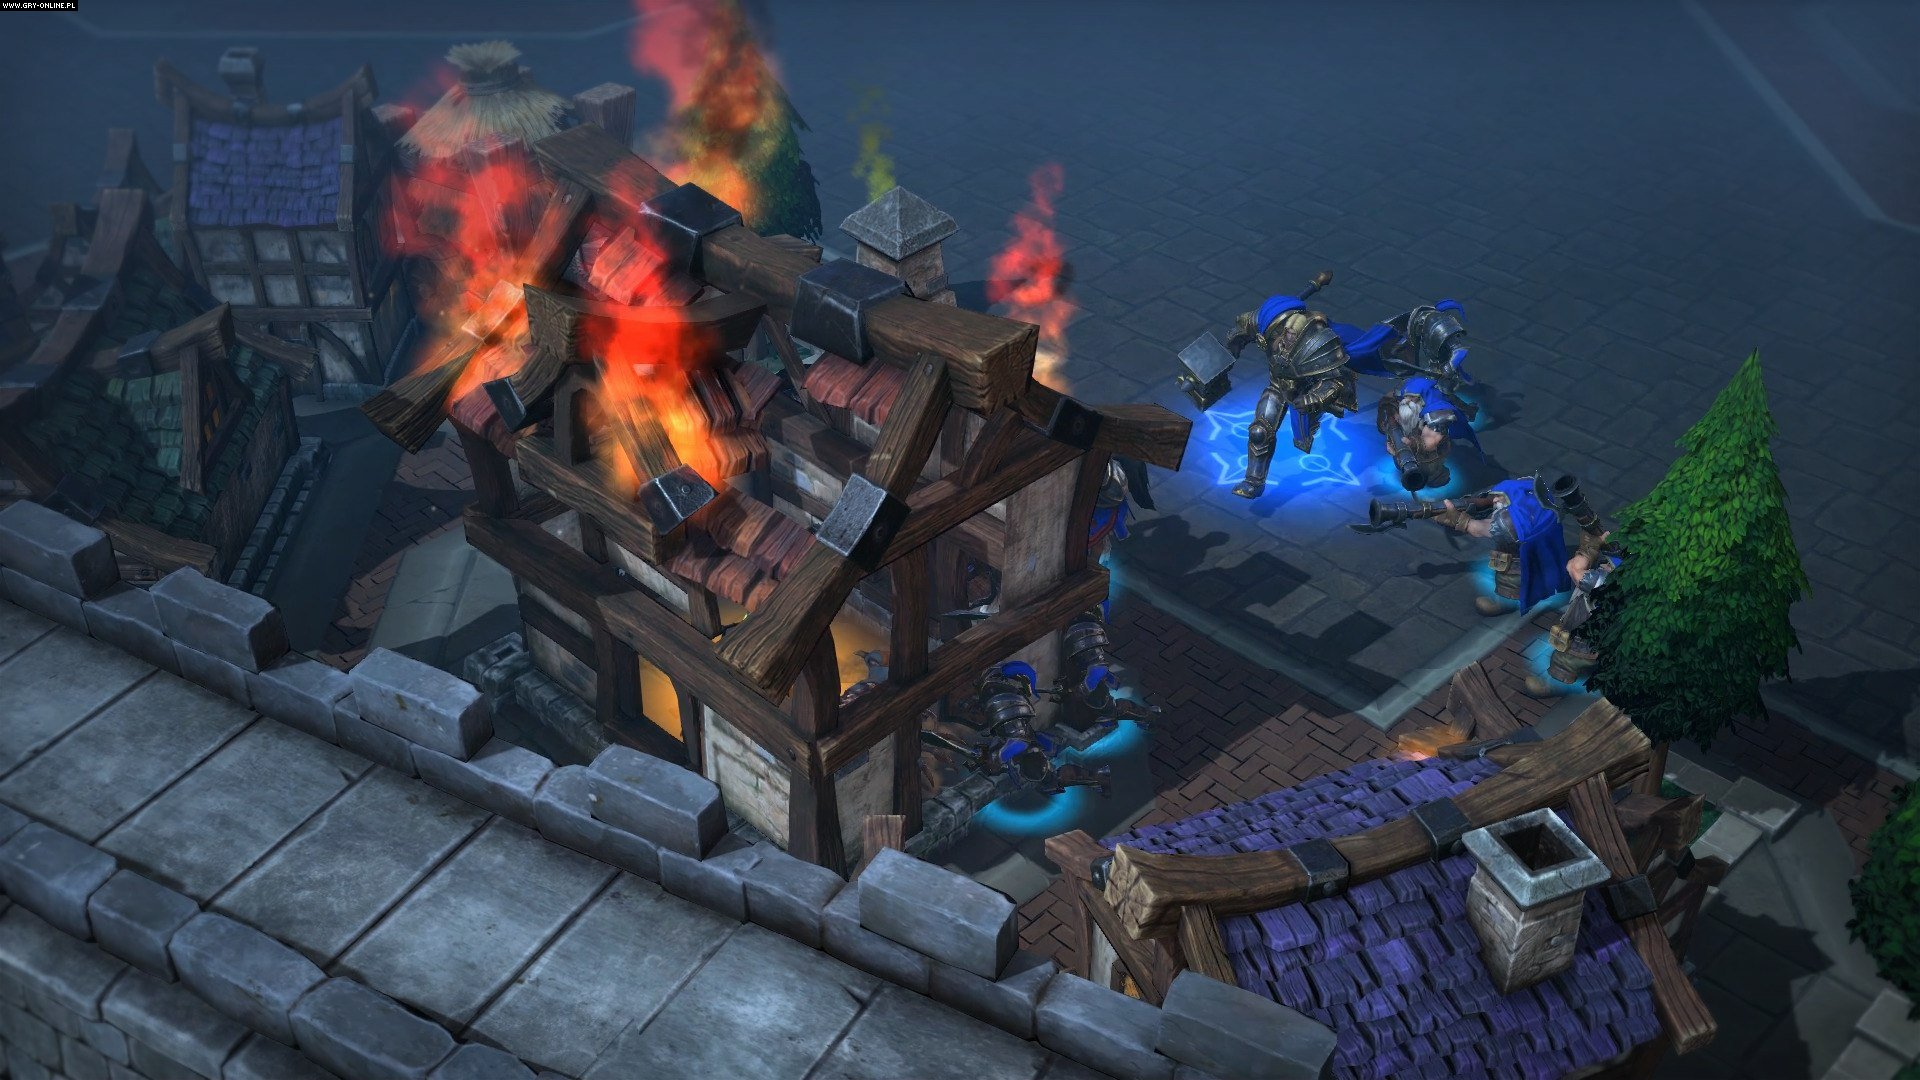 Download Warcraft 3: Reforged PC Game + Crack and Torrent